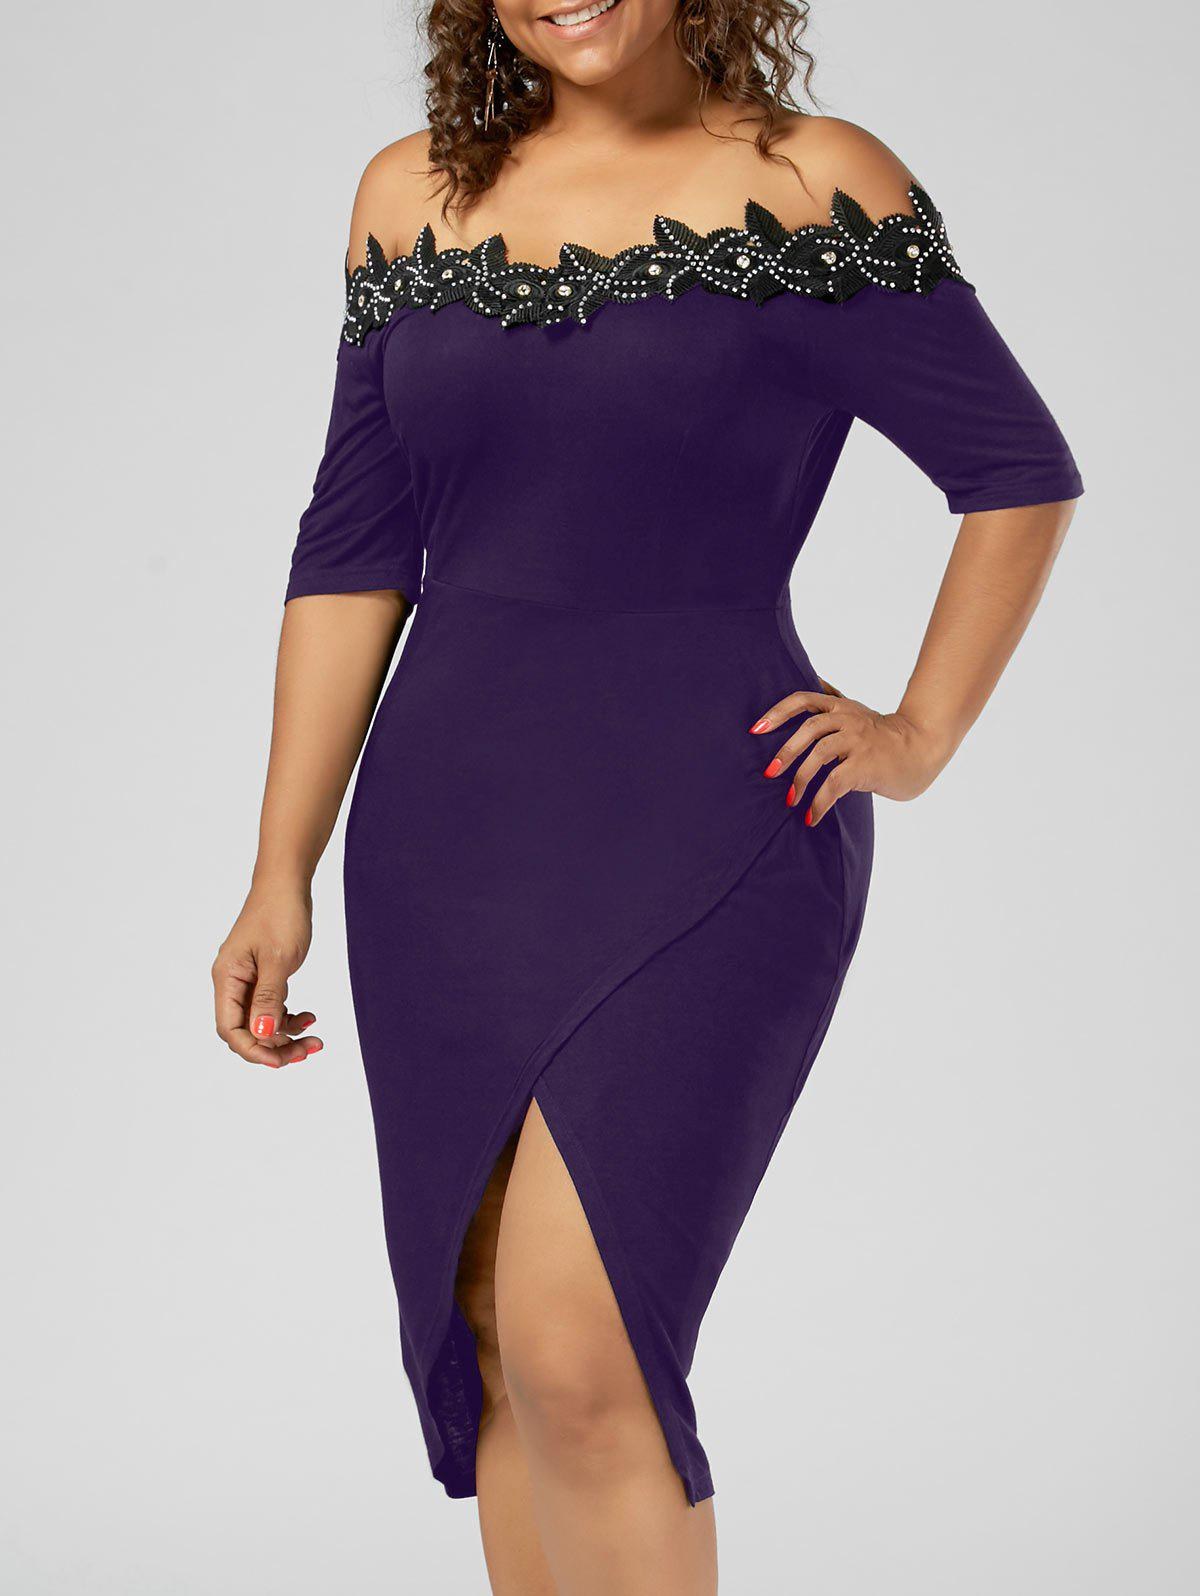 Plus Size Off the Shoulder Applique Pencil DressWOMEN<br><br>Size: XL; Color: PURPLE; Style: Brief; Material: Cotton,Spandex; Silhouette: Sheath; Dresses Length: Knee-Length; Neckline: Off The Shoulder; Sleeve Length: Short Sleeves; Pattern Type: Solid; With Belt: No; Season: Summer; Weight: 0.3500kg; Package Contents: 1 x Dress;